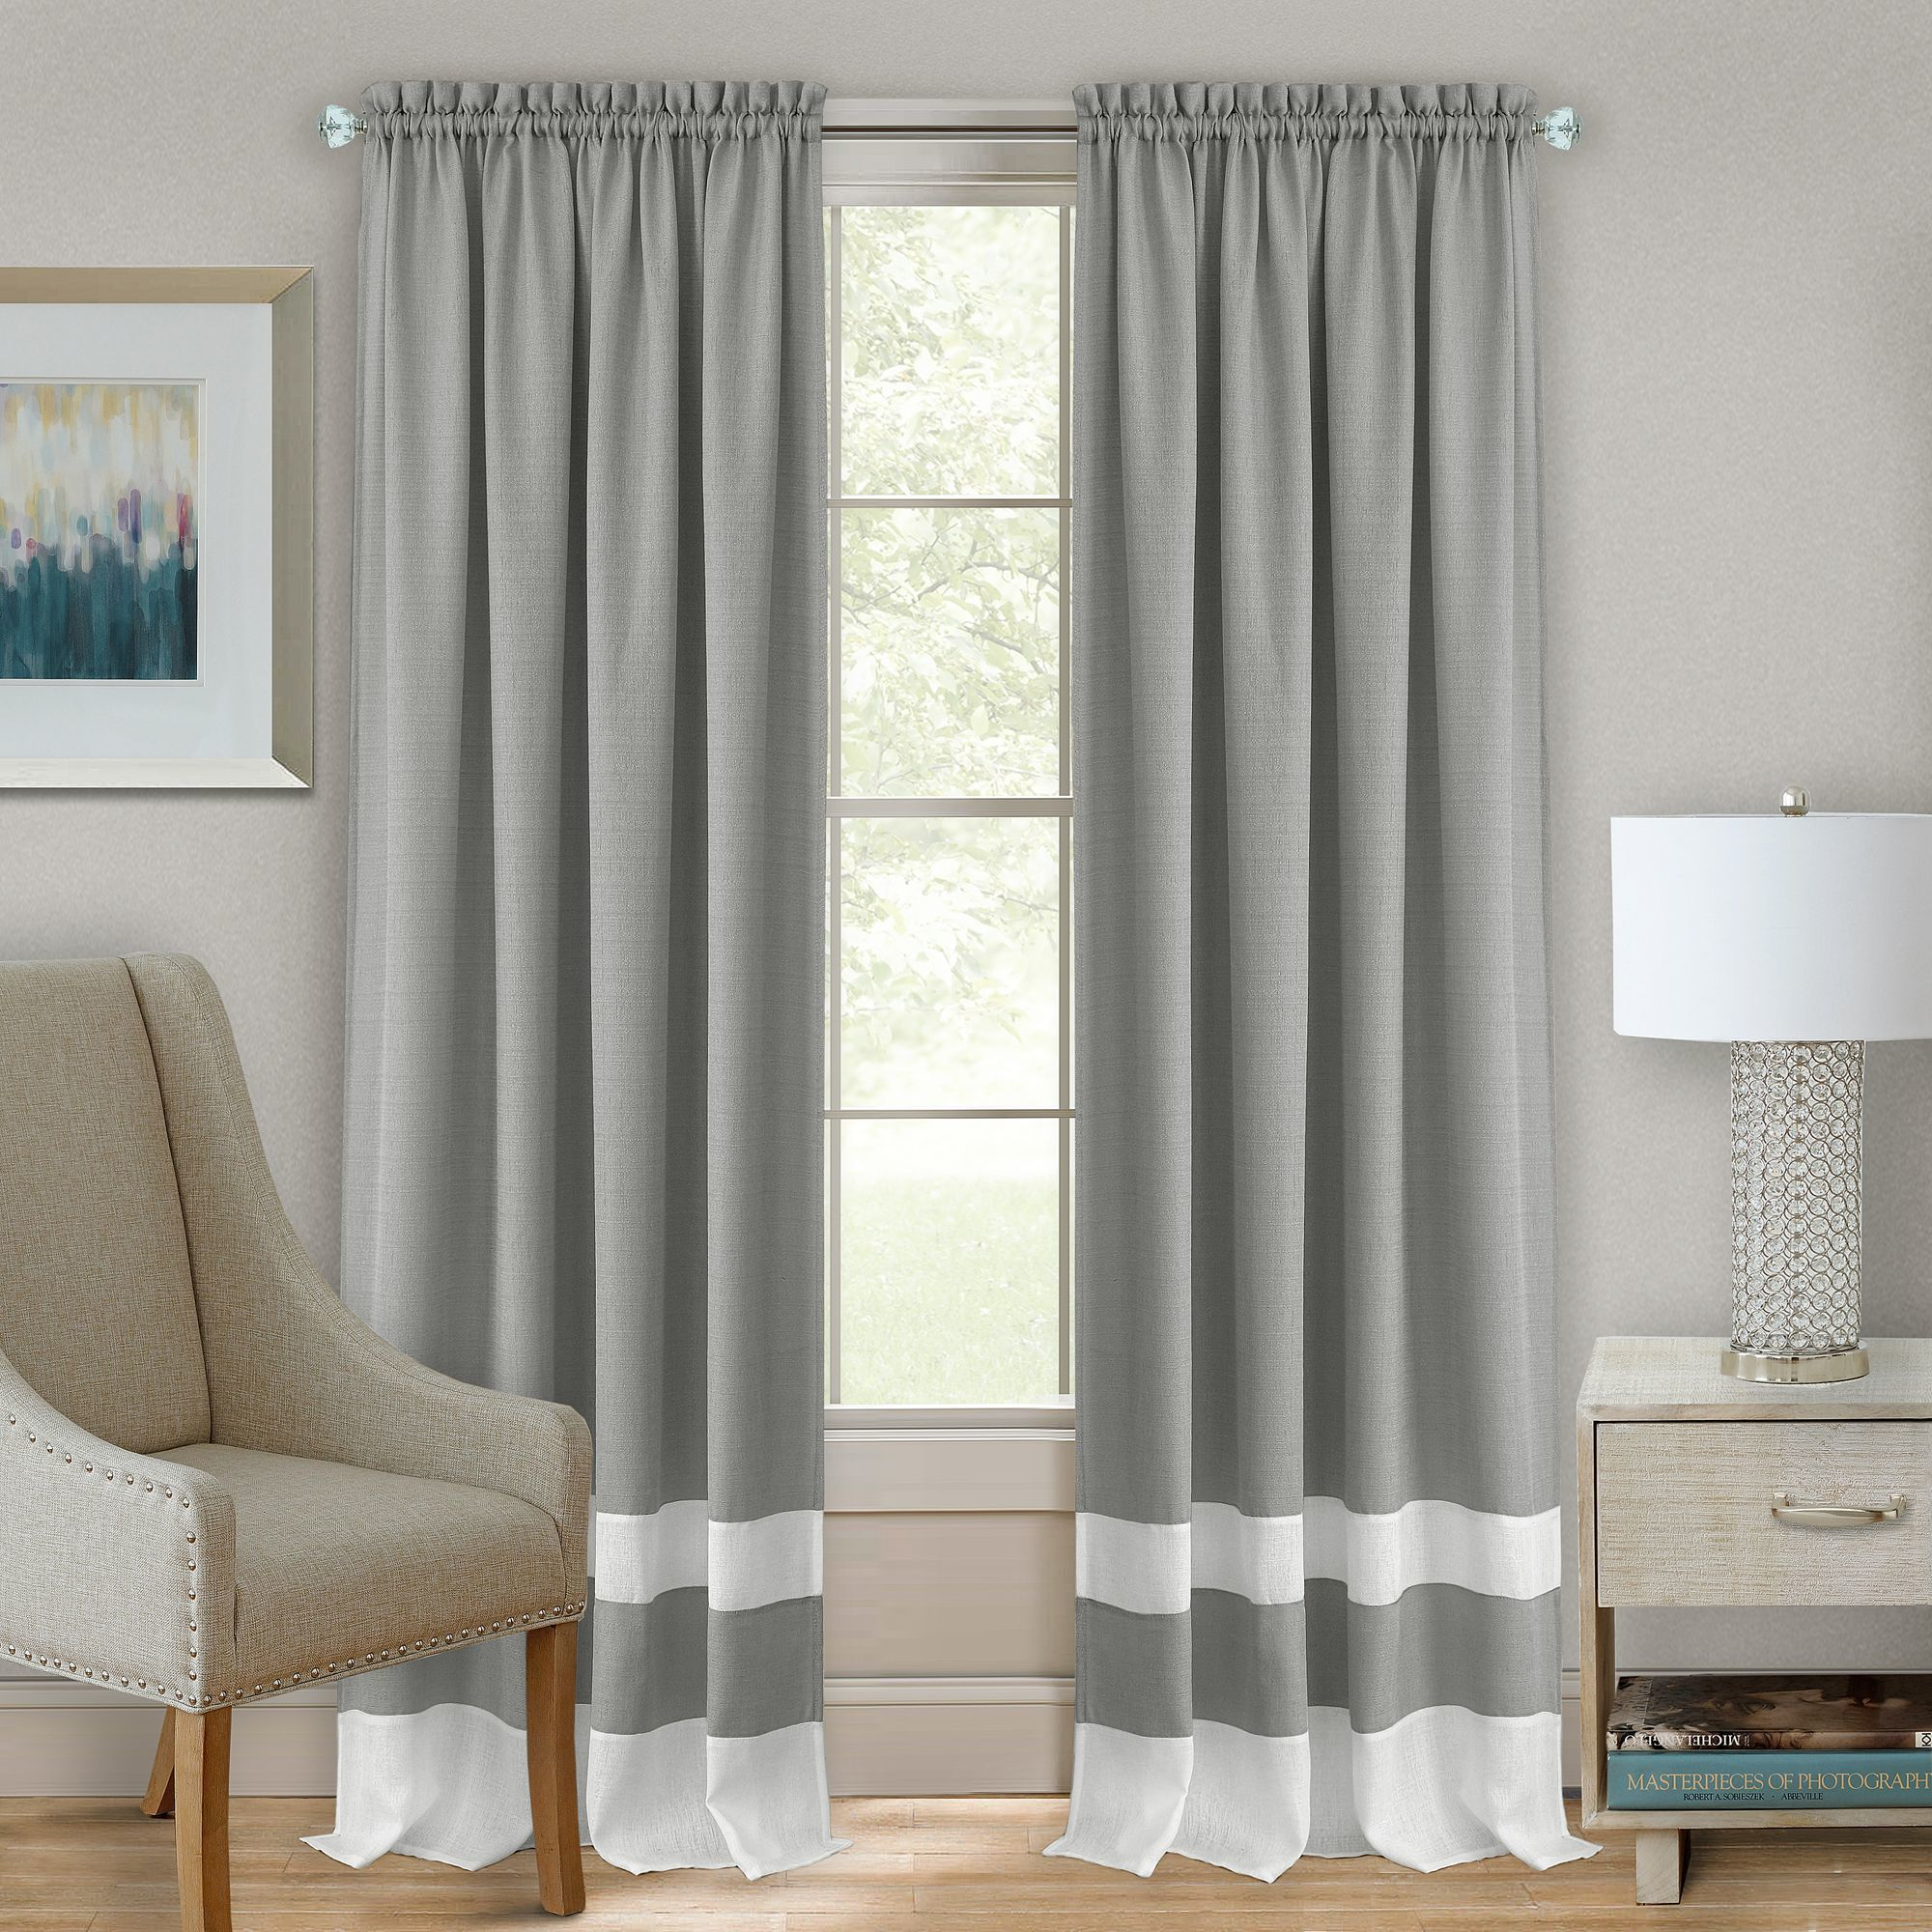 rod exceptional accessories window heavy drapes for hanging of cambria small images parts curtains traverse and rods pull curtain full design strong size